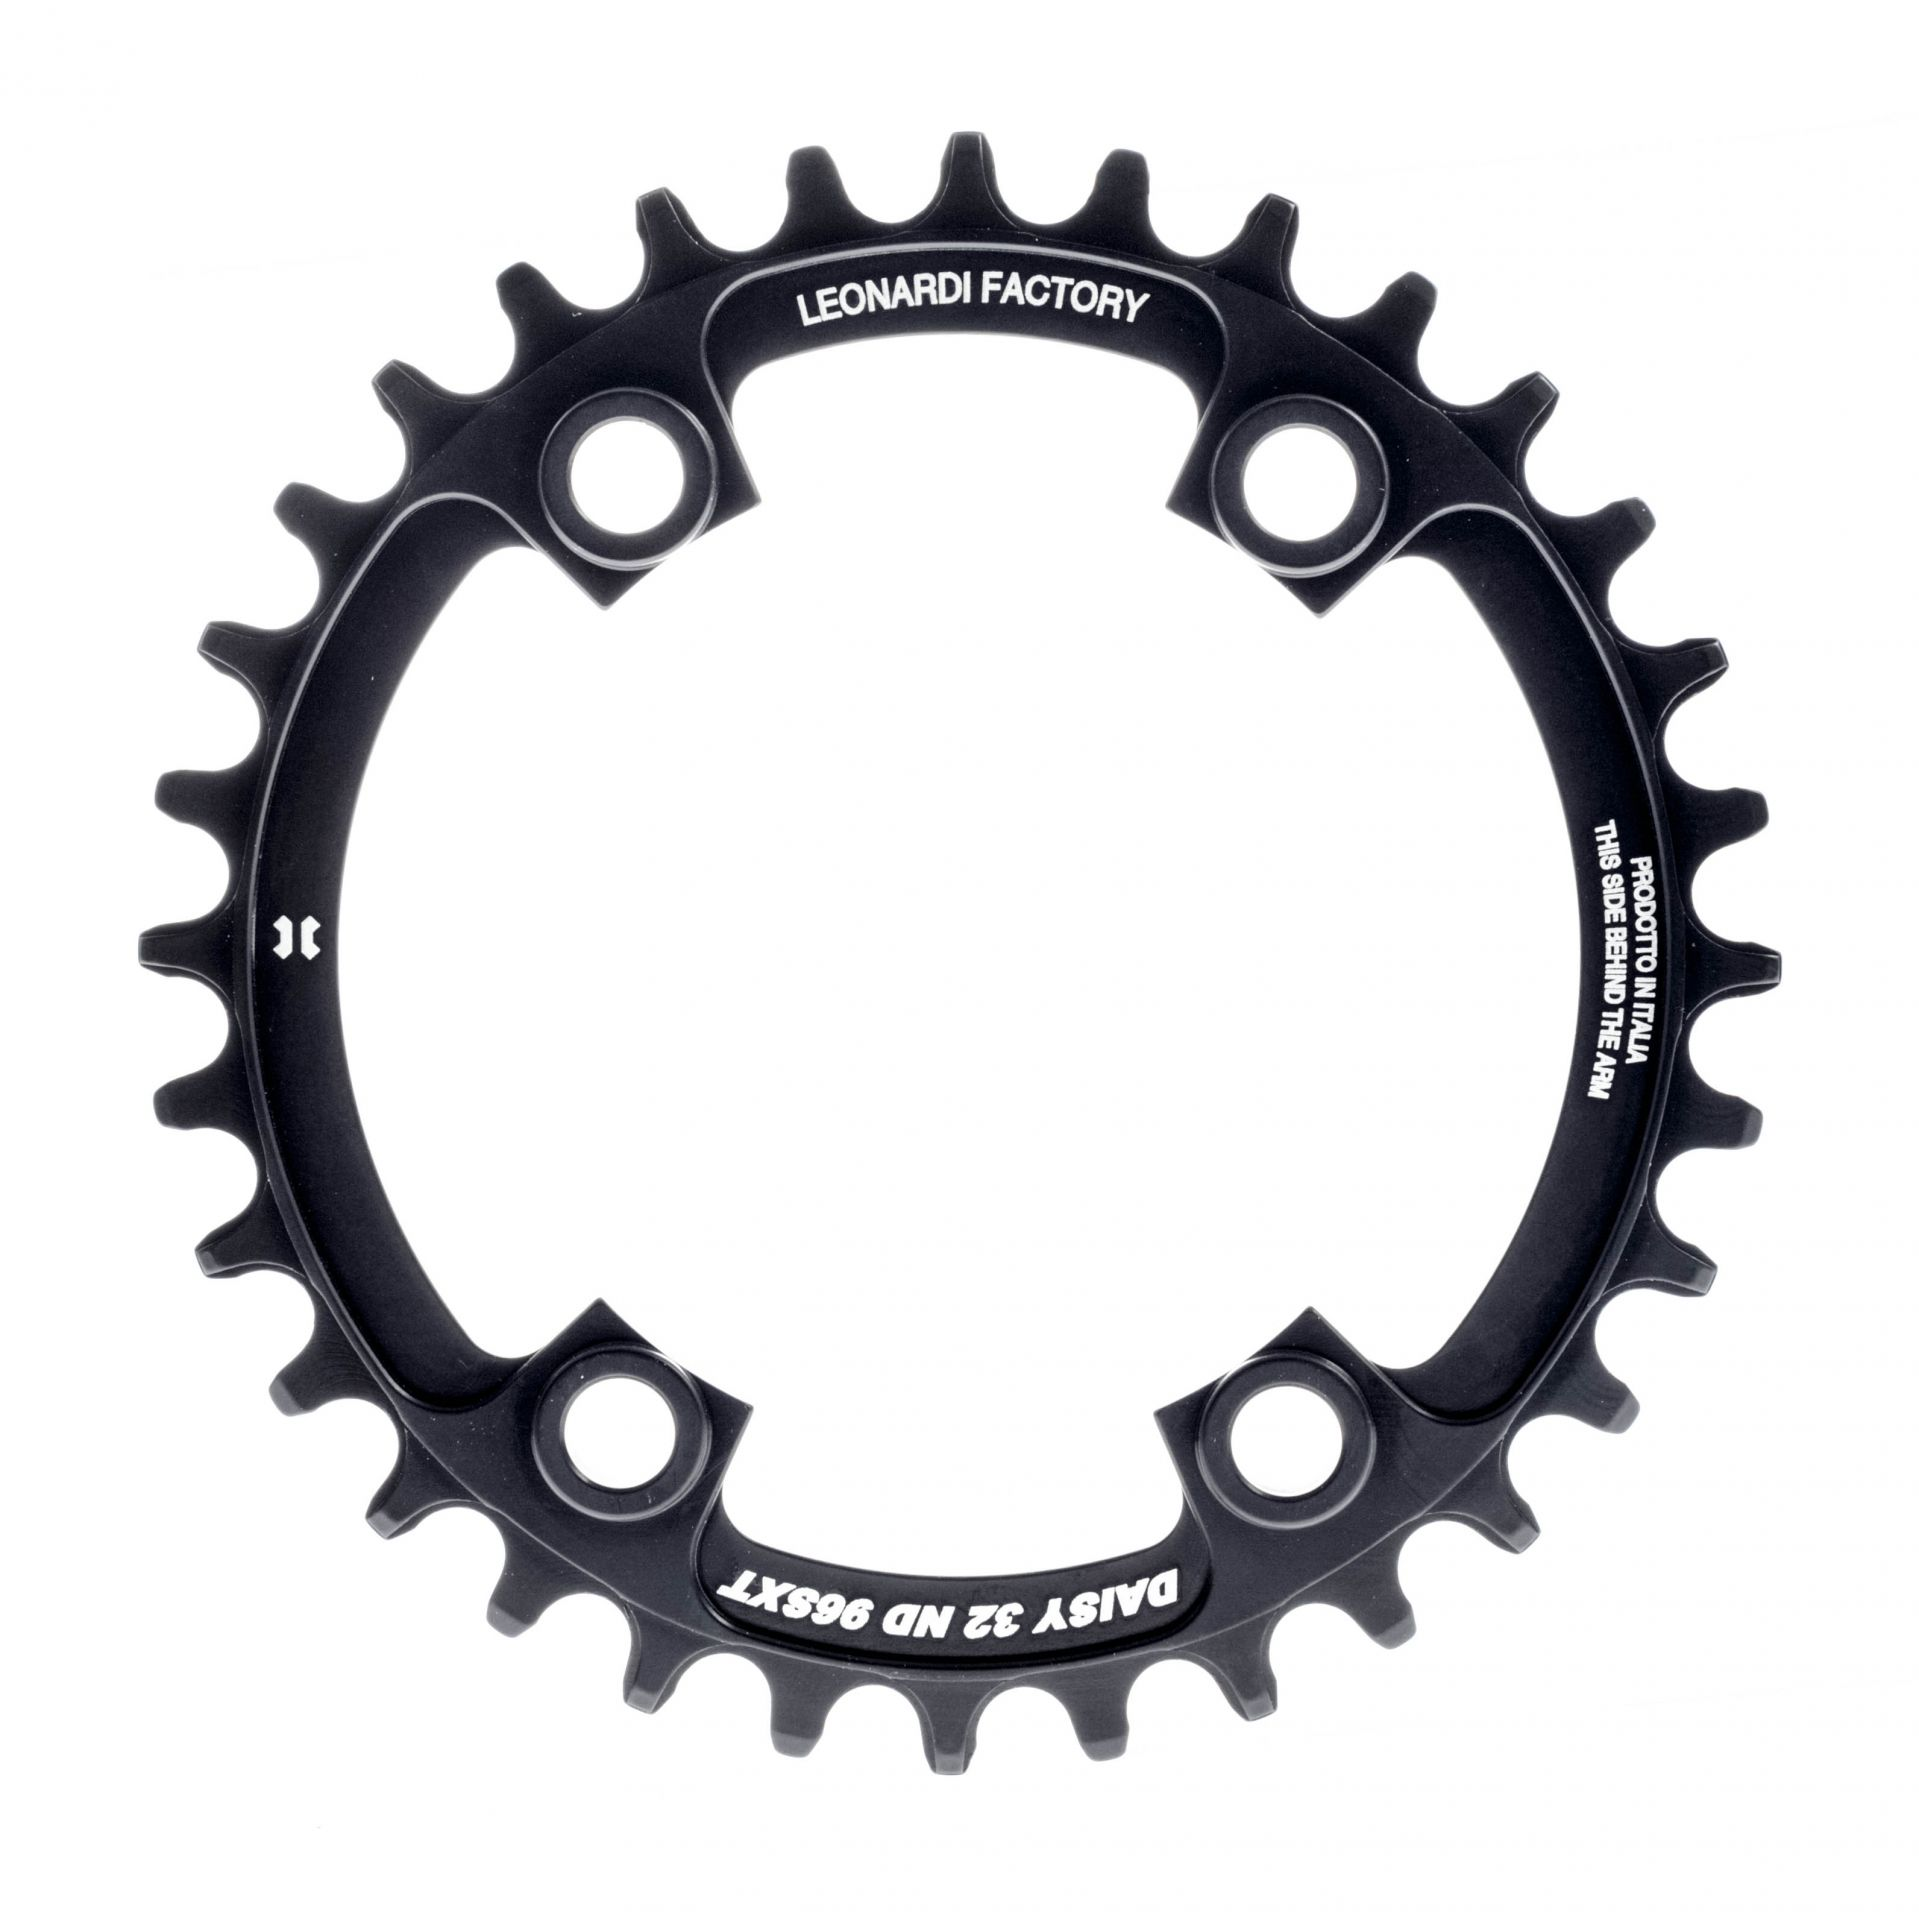 Plateau narrow/wide Leonardi Factory Daisy comp. Shimano 96 mm 10/11V 32 dents Noir